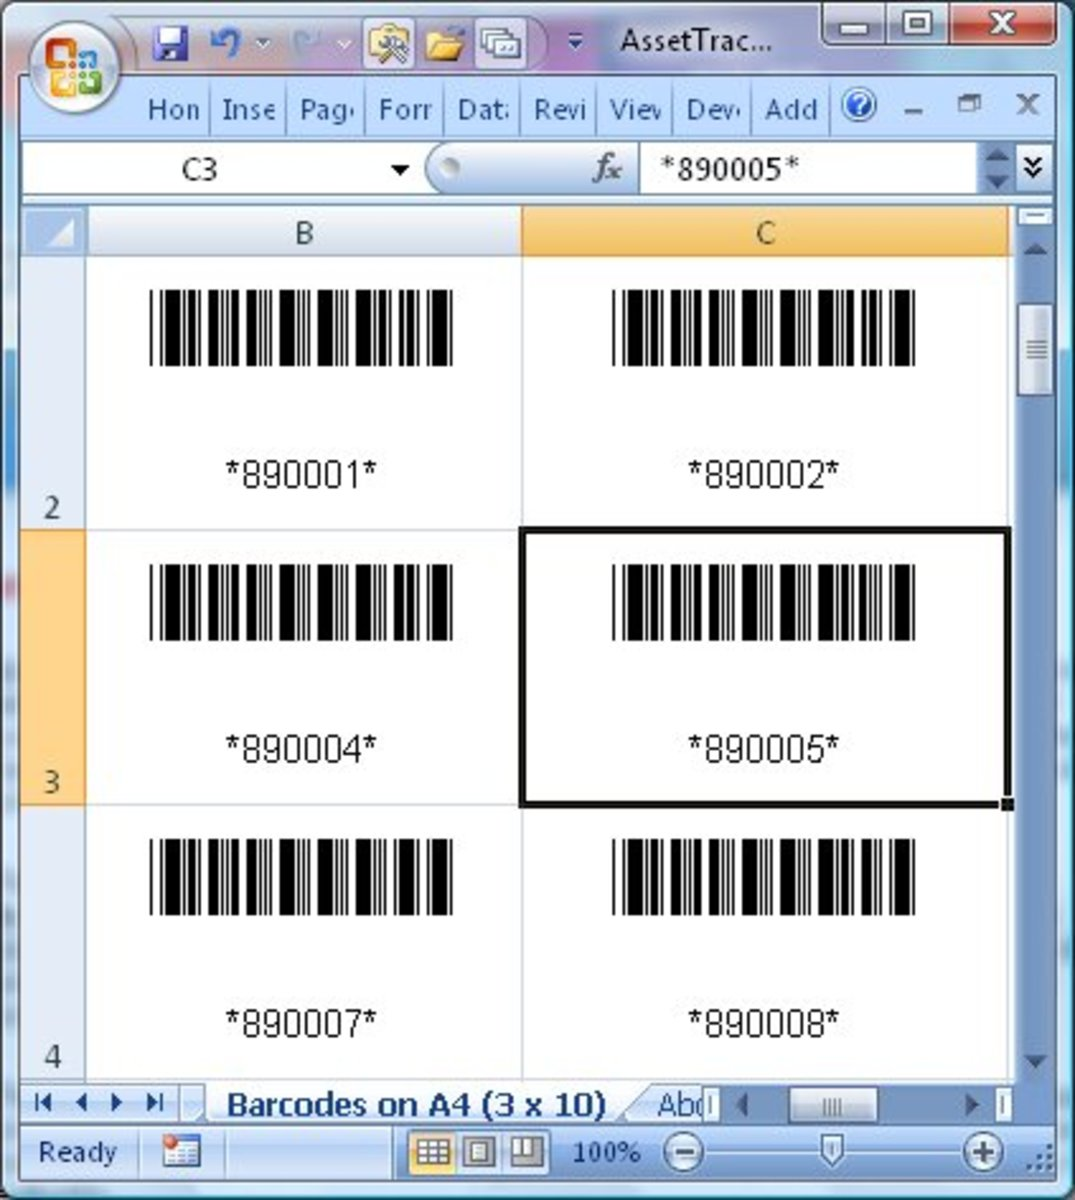 This is an Example of Barcode Assets Tracking that you can make to Track Assets for Home Inventory and Small Businesses Using Free Excel Templates